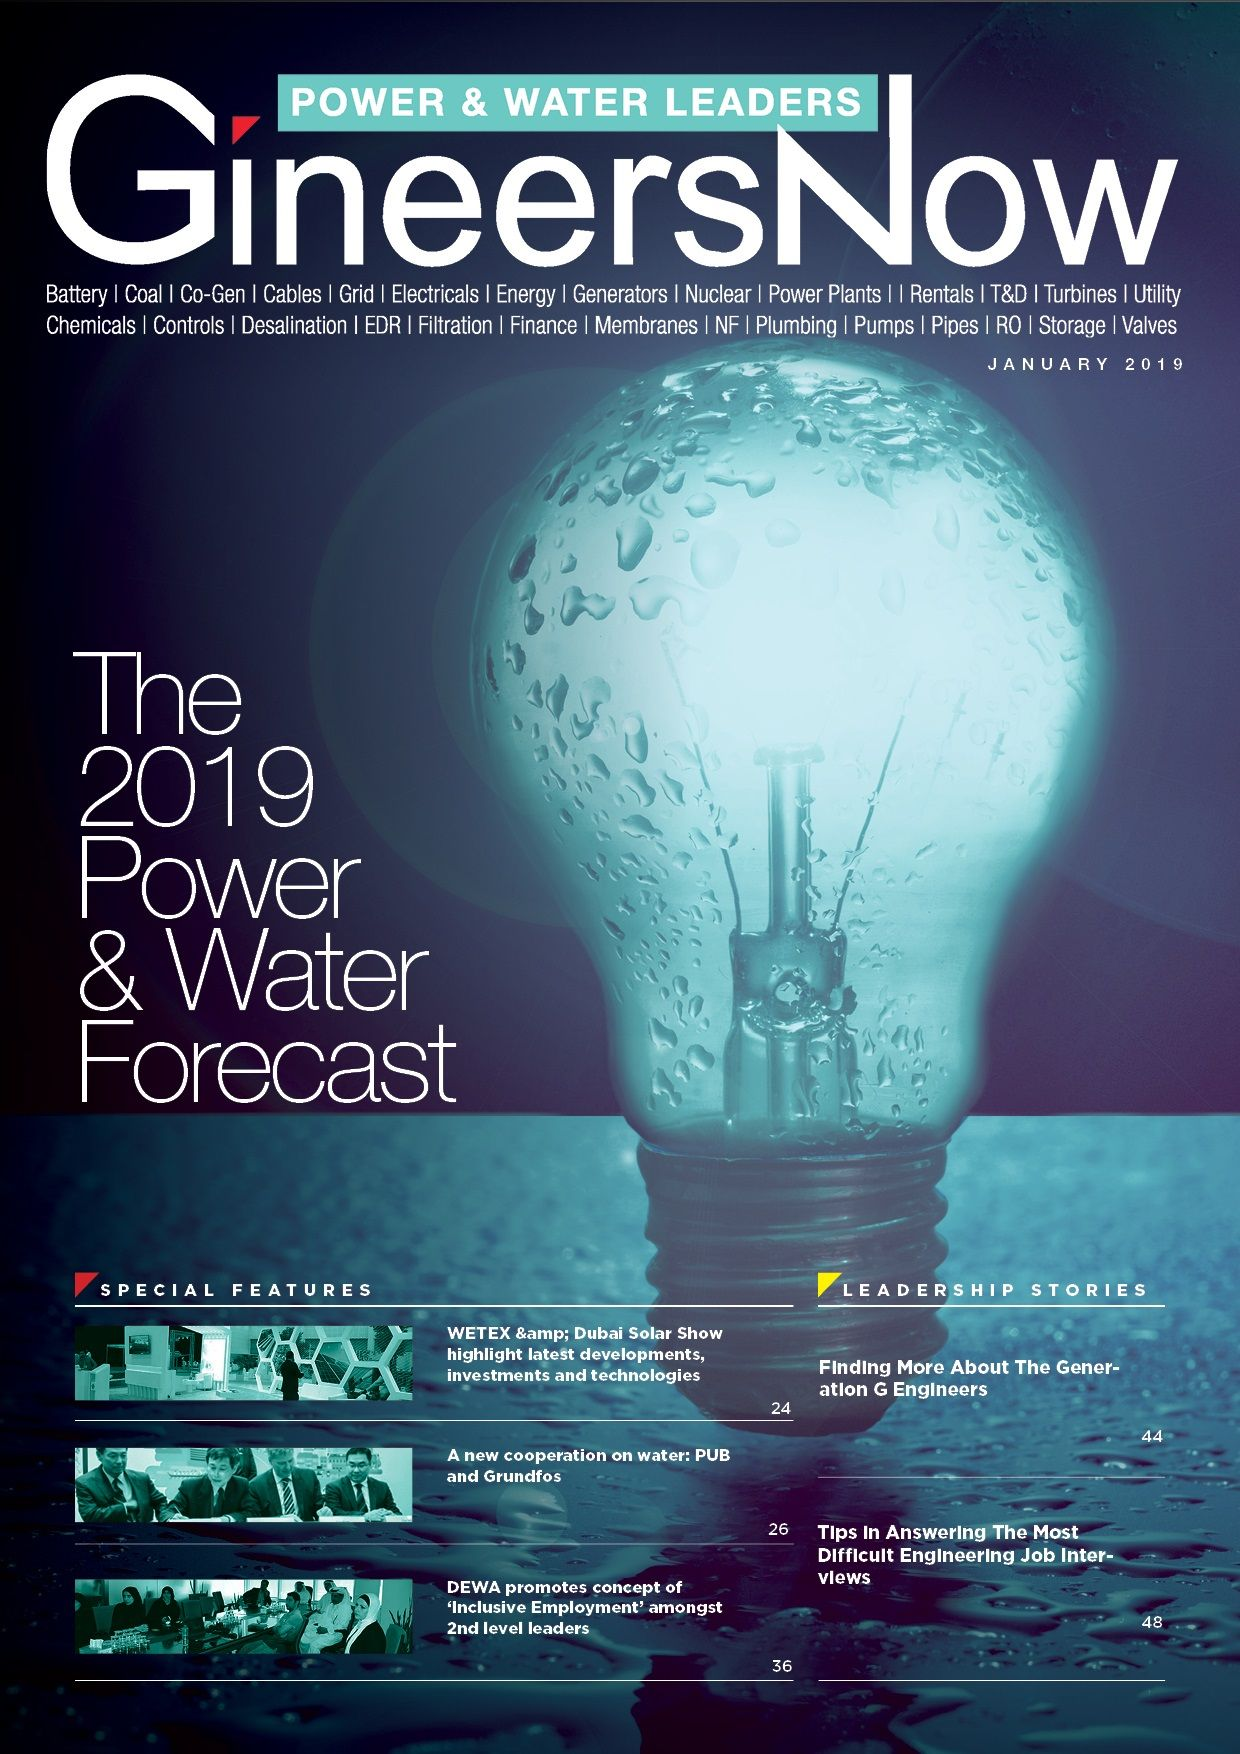 2019 Utilities, Power and Water Forecast